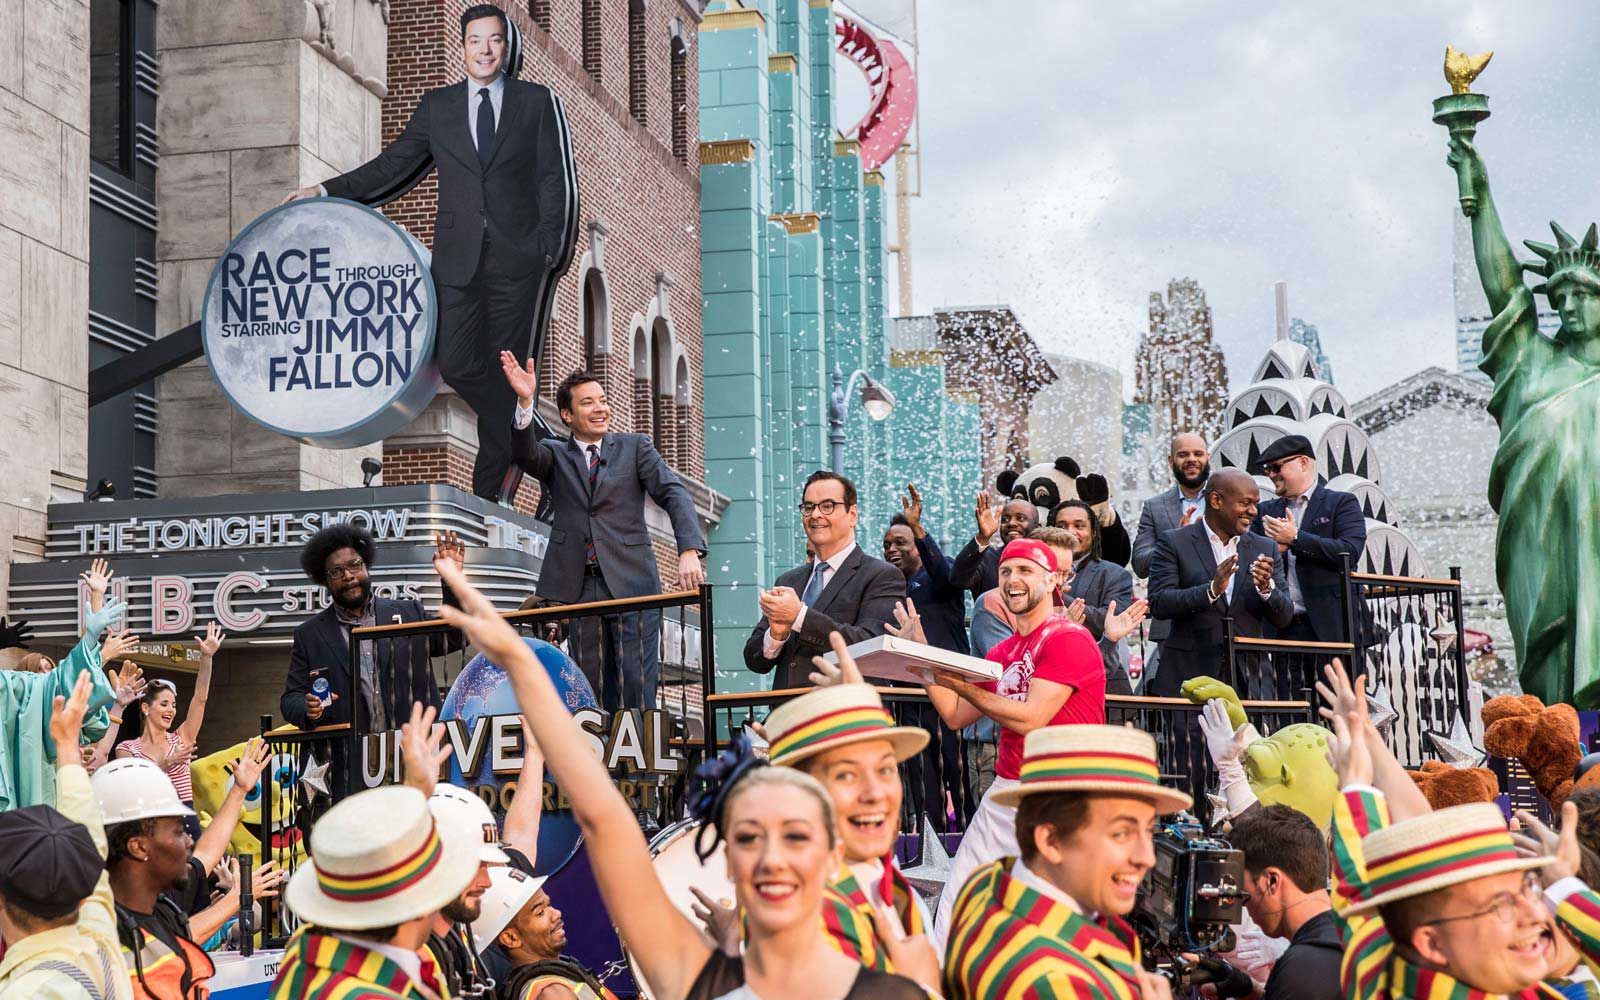 Universal Studios Orlando — Race Through New York Starring Jimmy Fallon